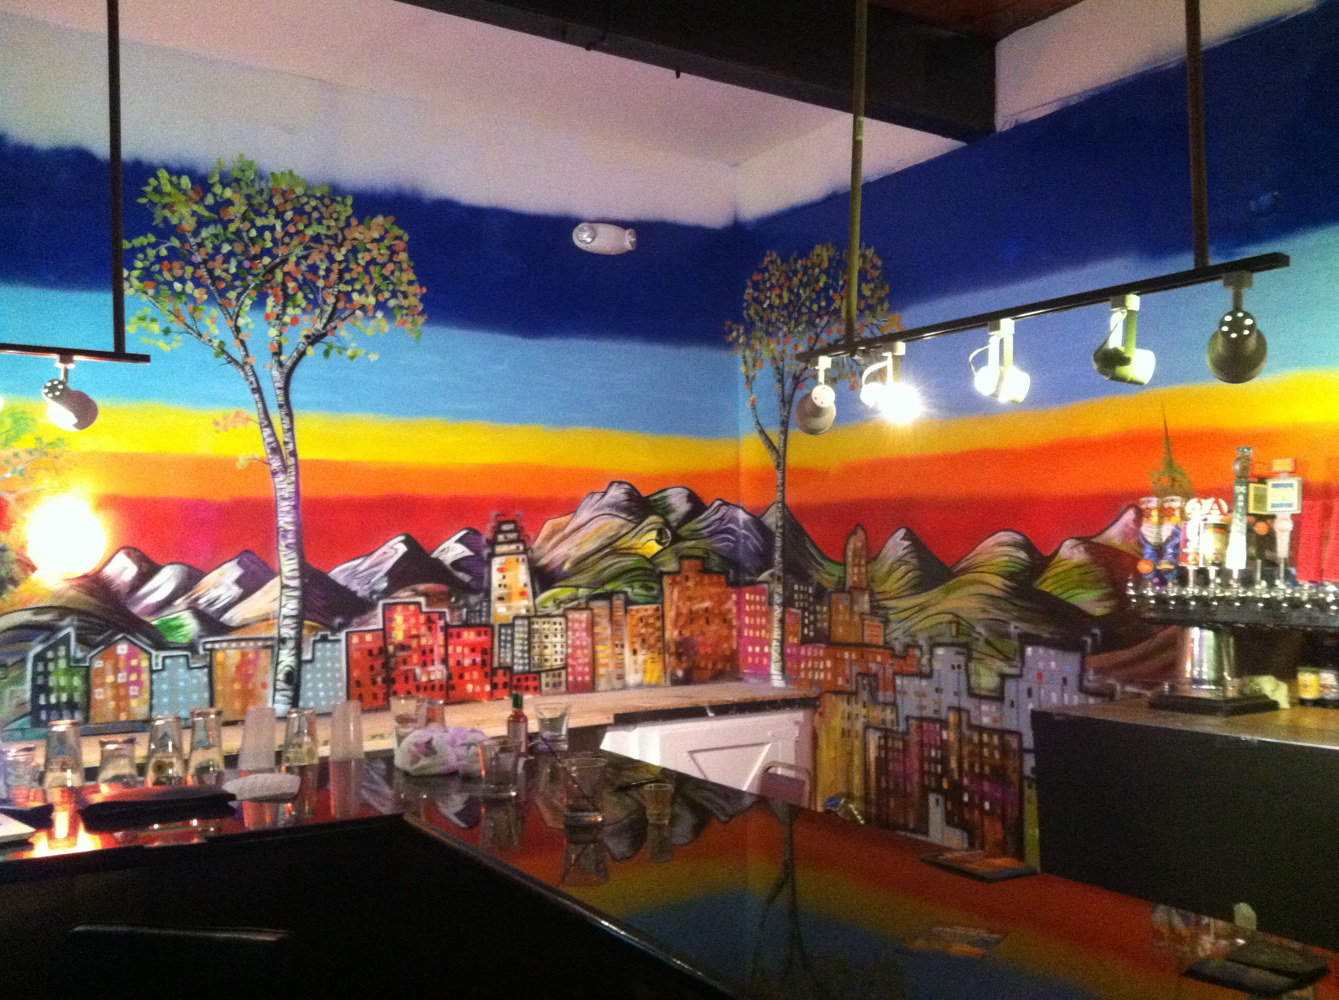 Denver Skyline Mural in Restaurant by Isaac Carpenter